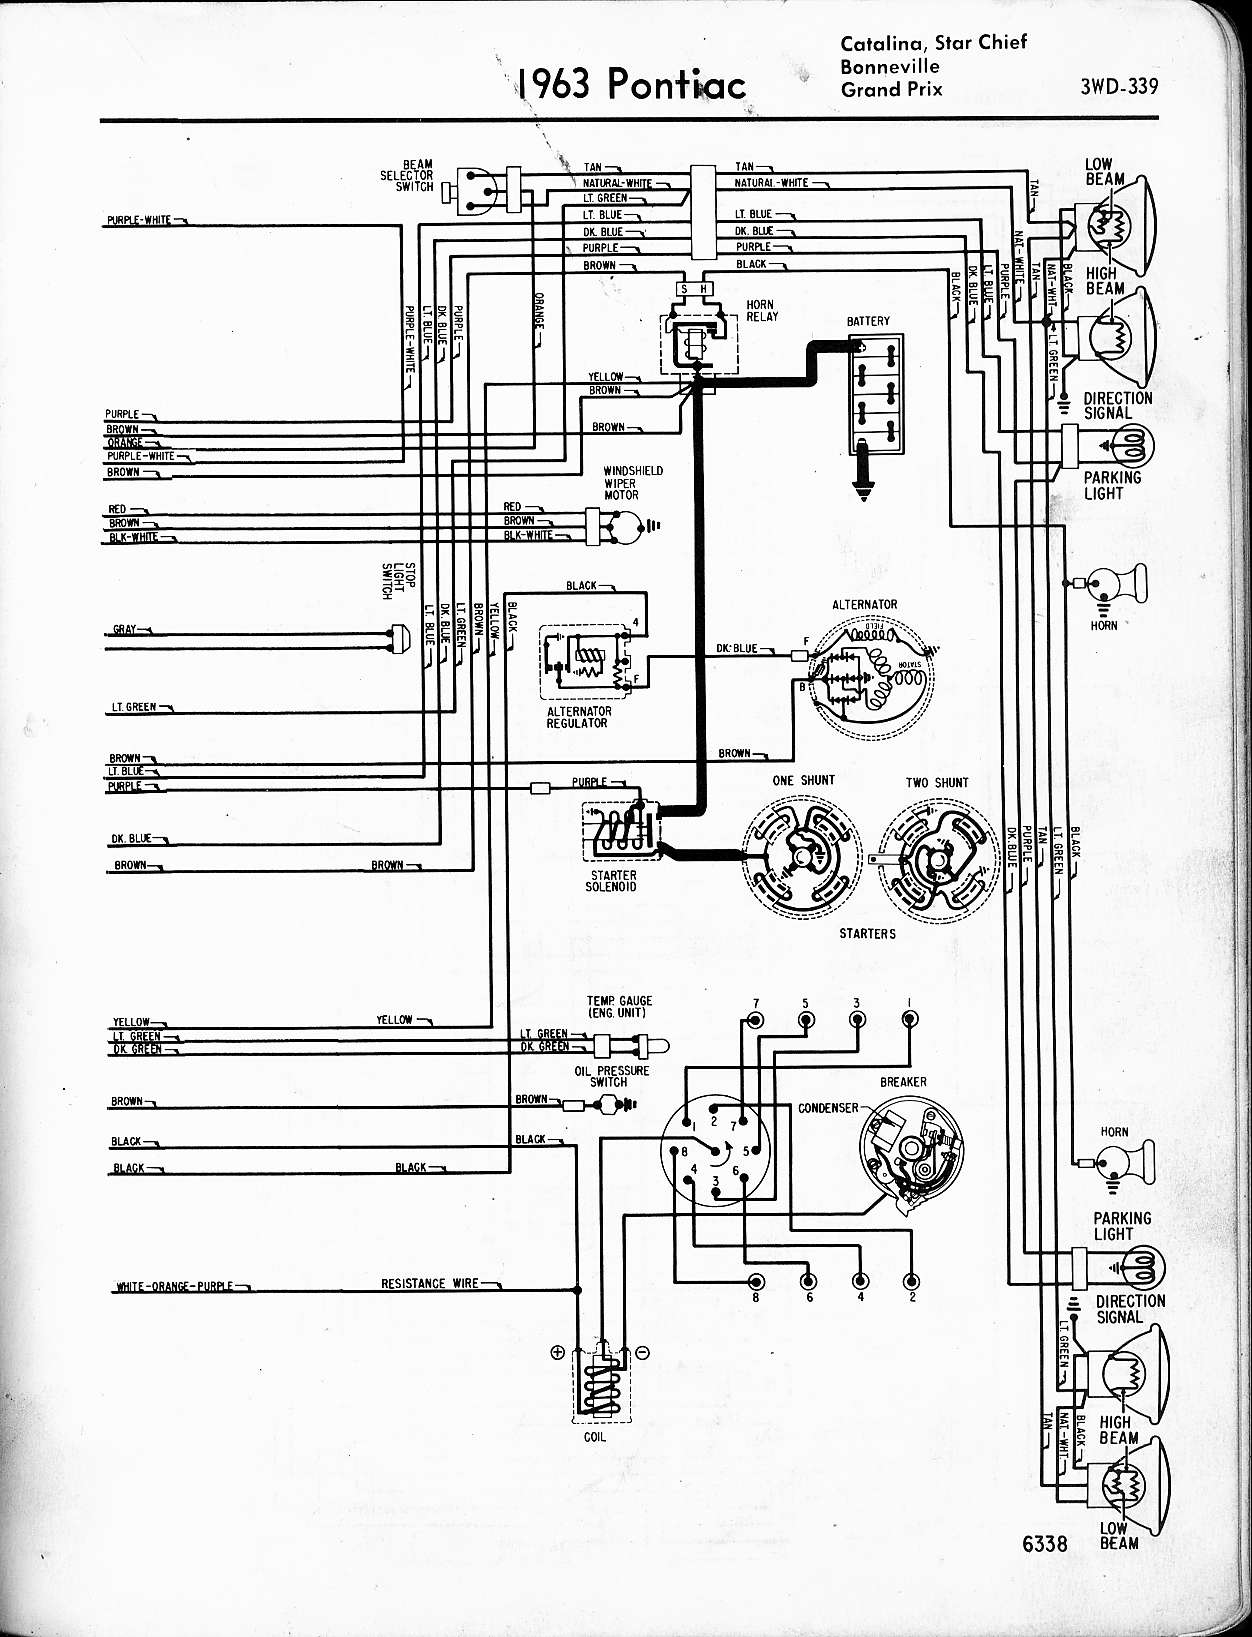 1 Wire Gm Alternator Cs130 Wiring Diagram Html further 11 Hp Honda Wiring Diagram further 67 Mustang Solenoid Wiring Diagram likewise John Deere 318 Ignition Wiring Diagram furthermore Ford Tractor Power Steering Conversion Kit. on discussion t42326 ds796902